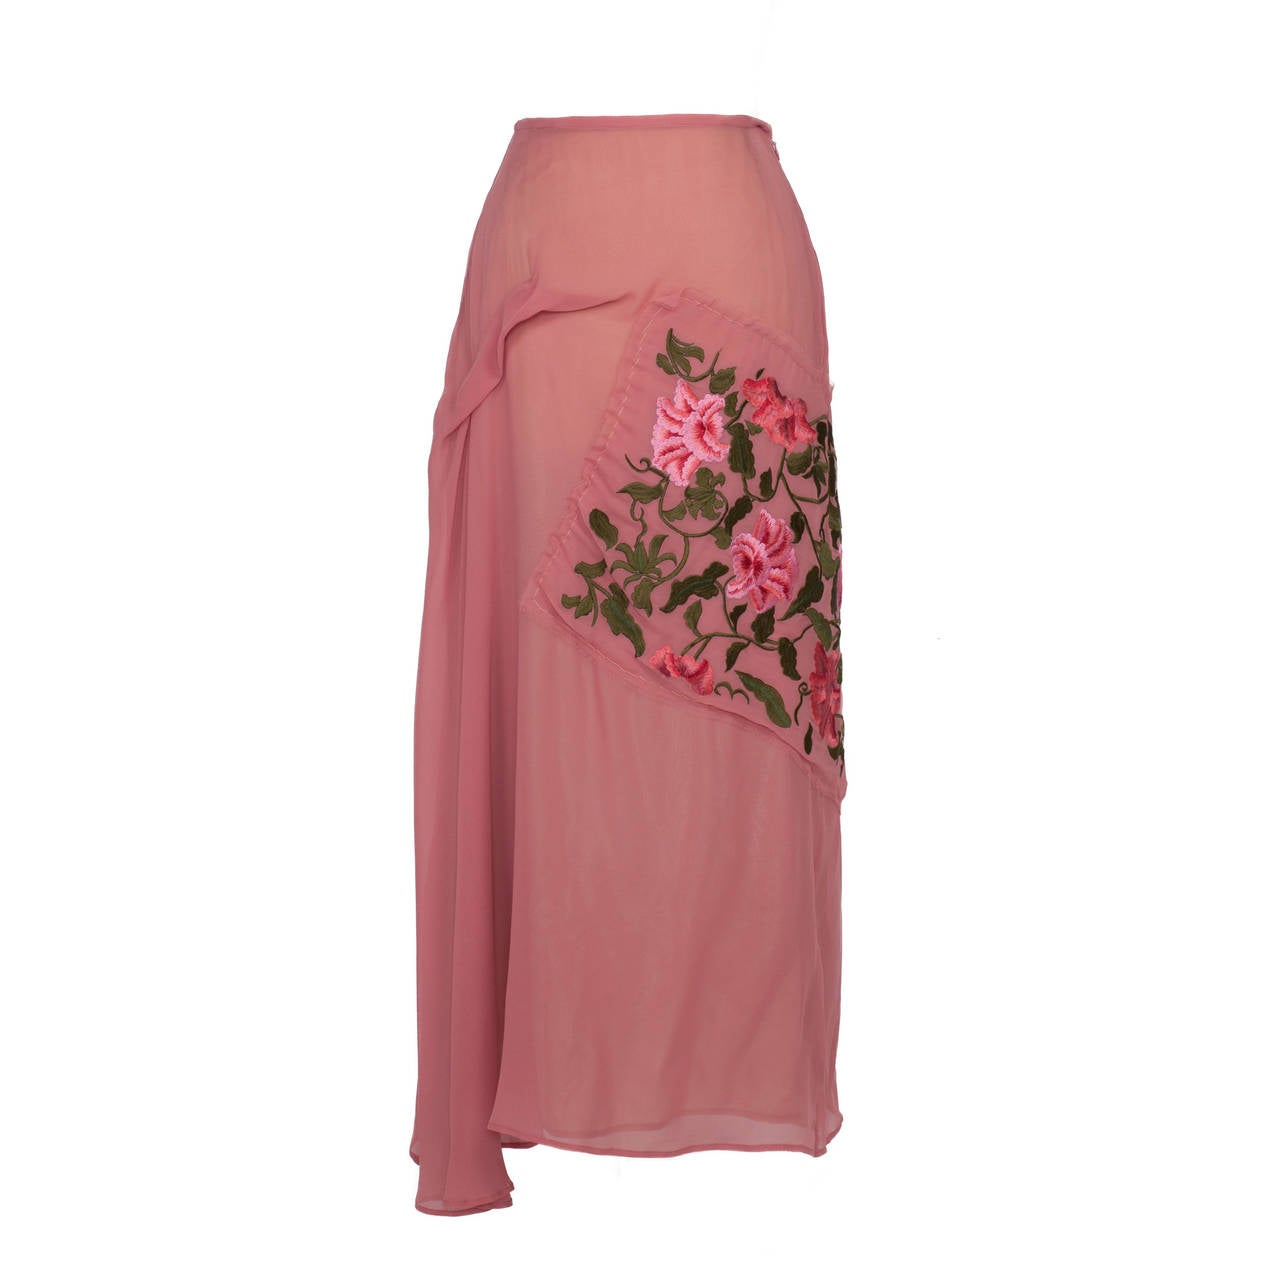 Yohji Yamamoto + Noir Pink Skirt Flower Embroidery In Excellent Condition For Sale In Berlin, DE